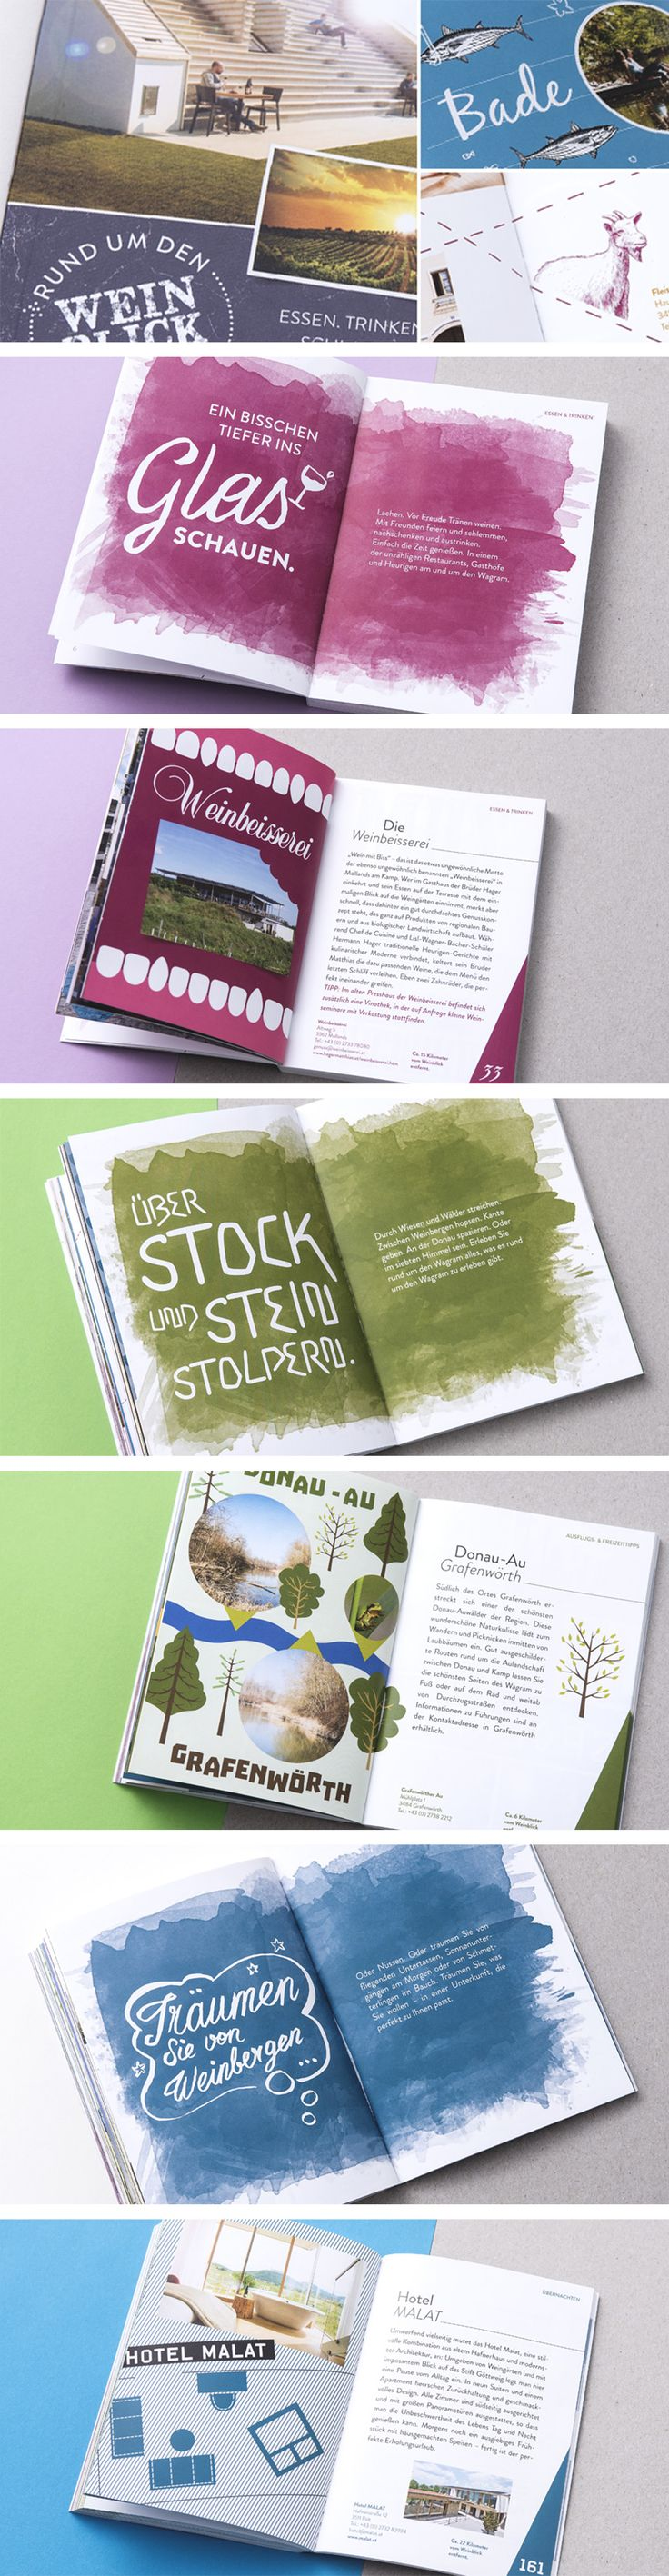 WEINBLICK WAGRAM // Brochure: By www.lunik2.com #design #marketing #travelguide…